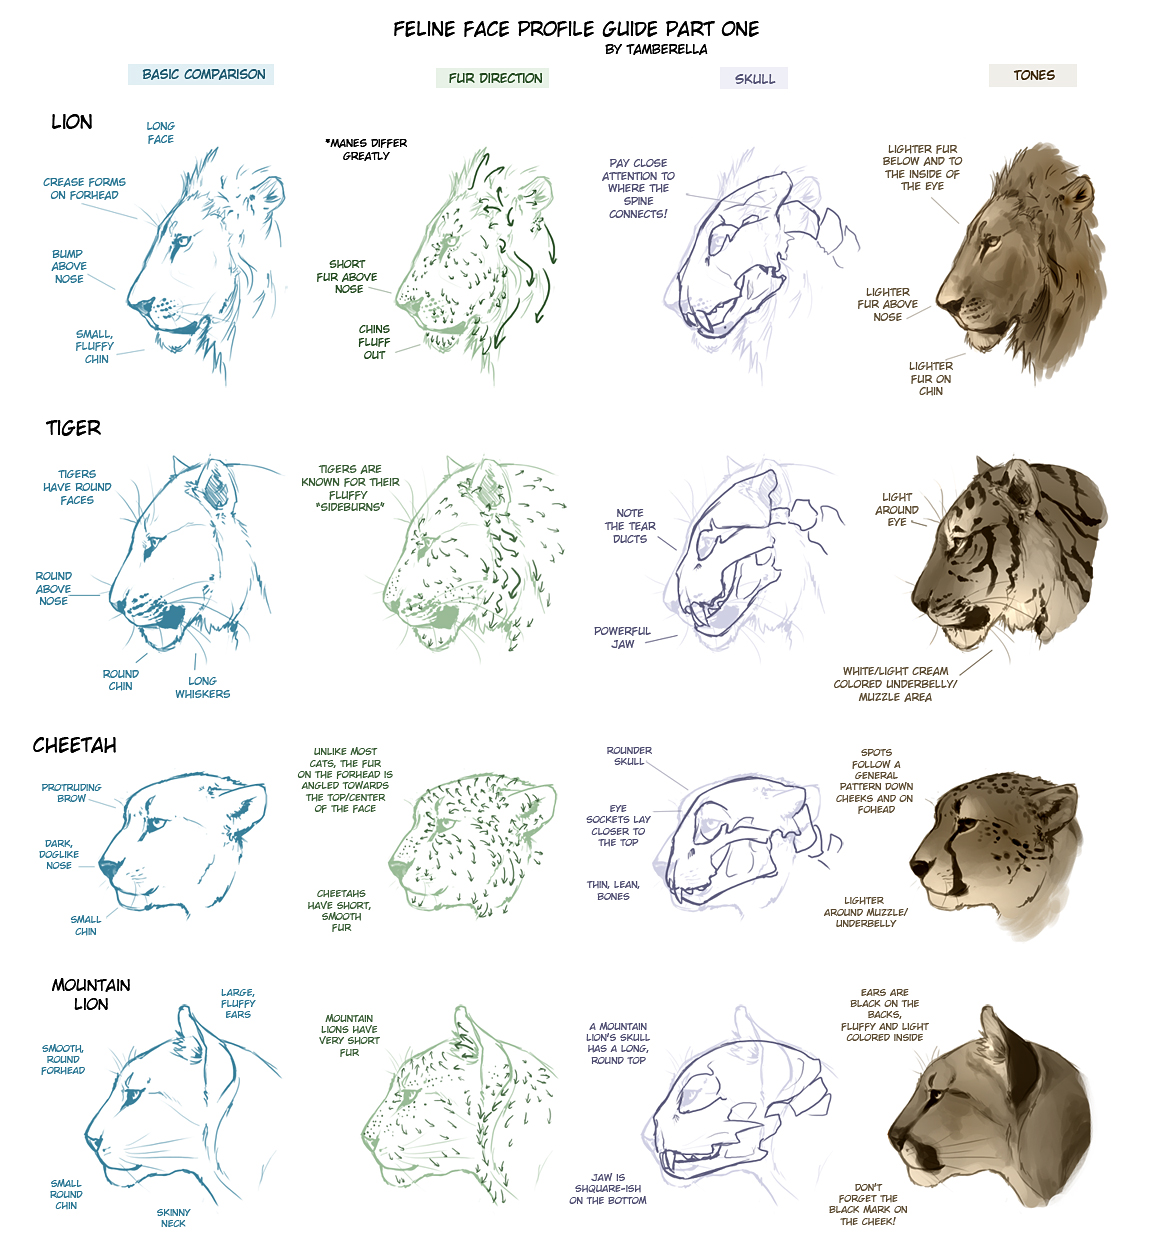 Feline Face Profile Tutorial 1 by TamberElla